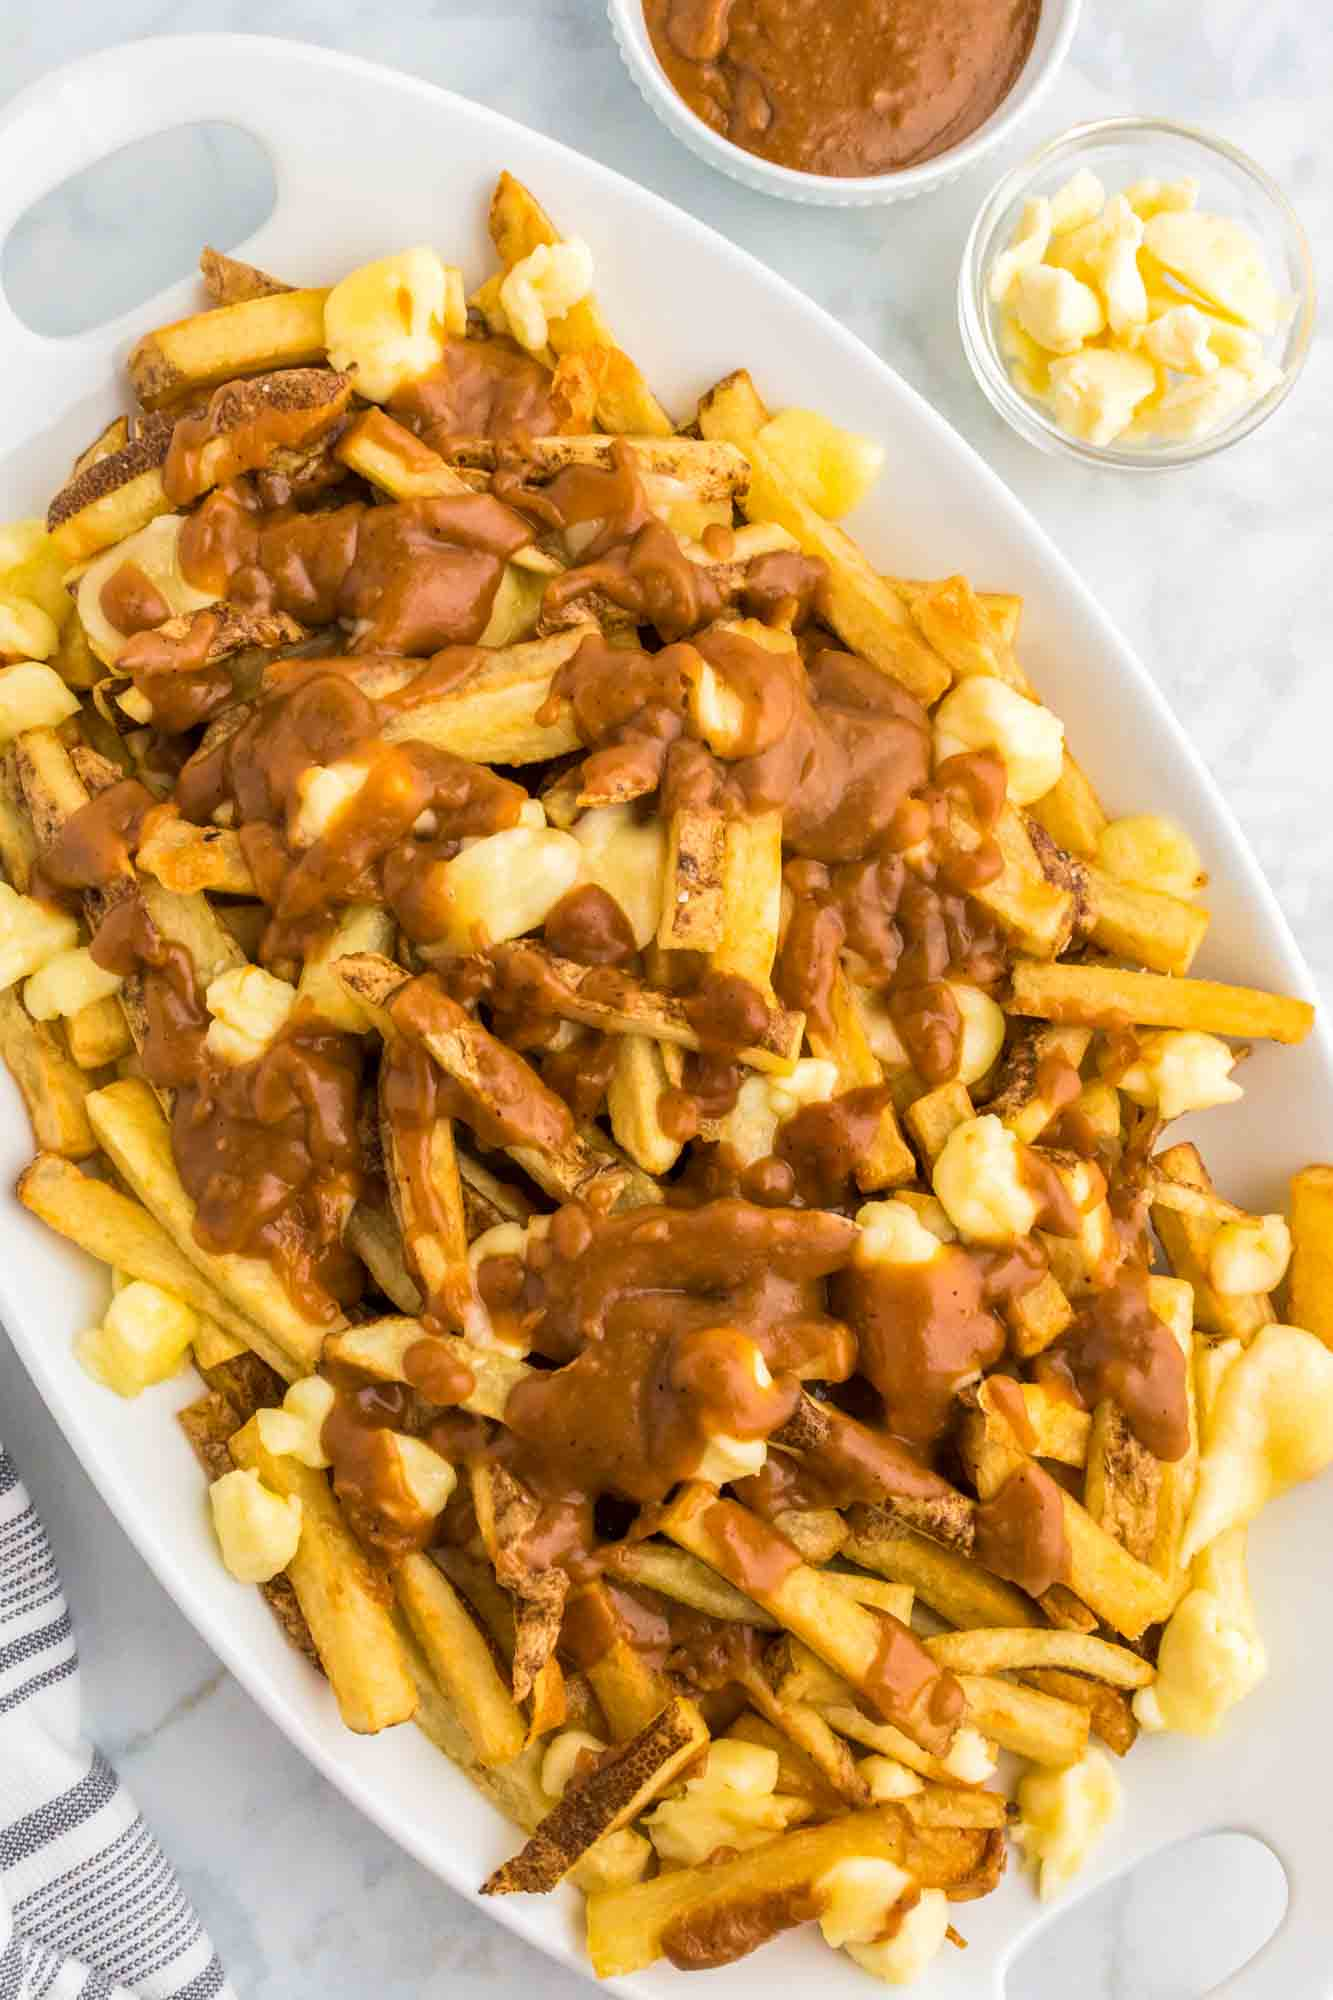 Poutine served on a large platter, with cheese curds and extra gravy on the side.